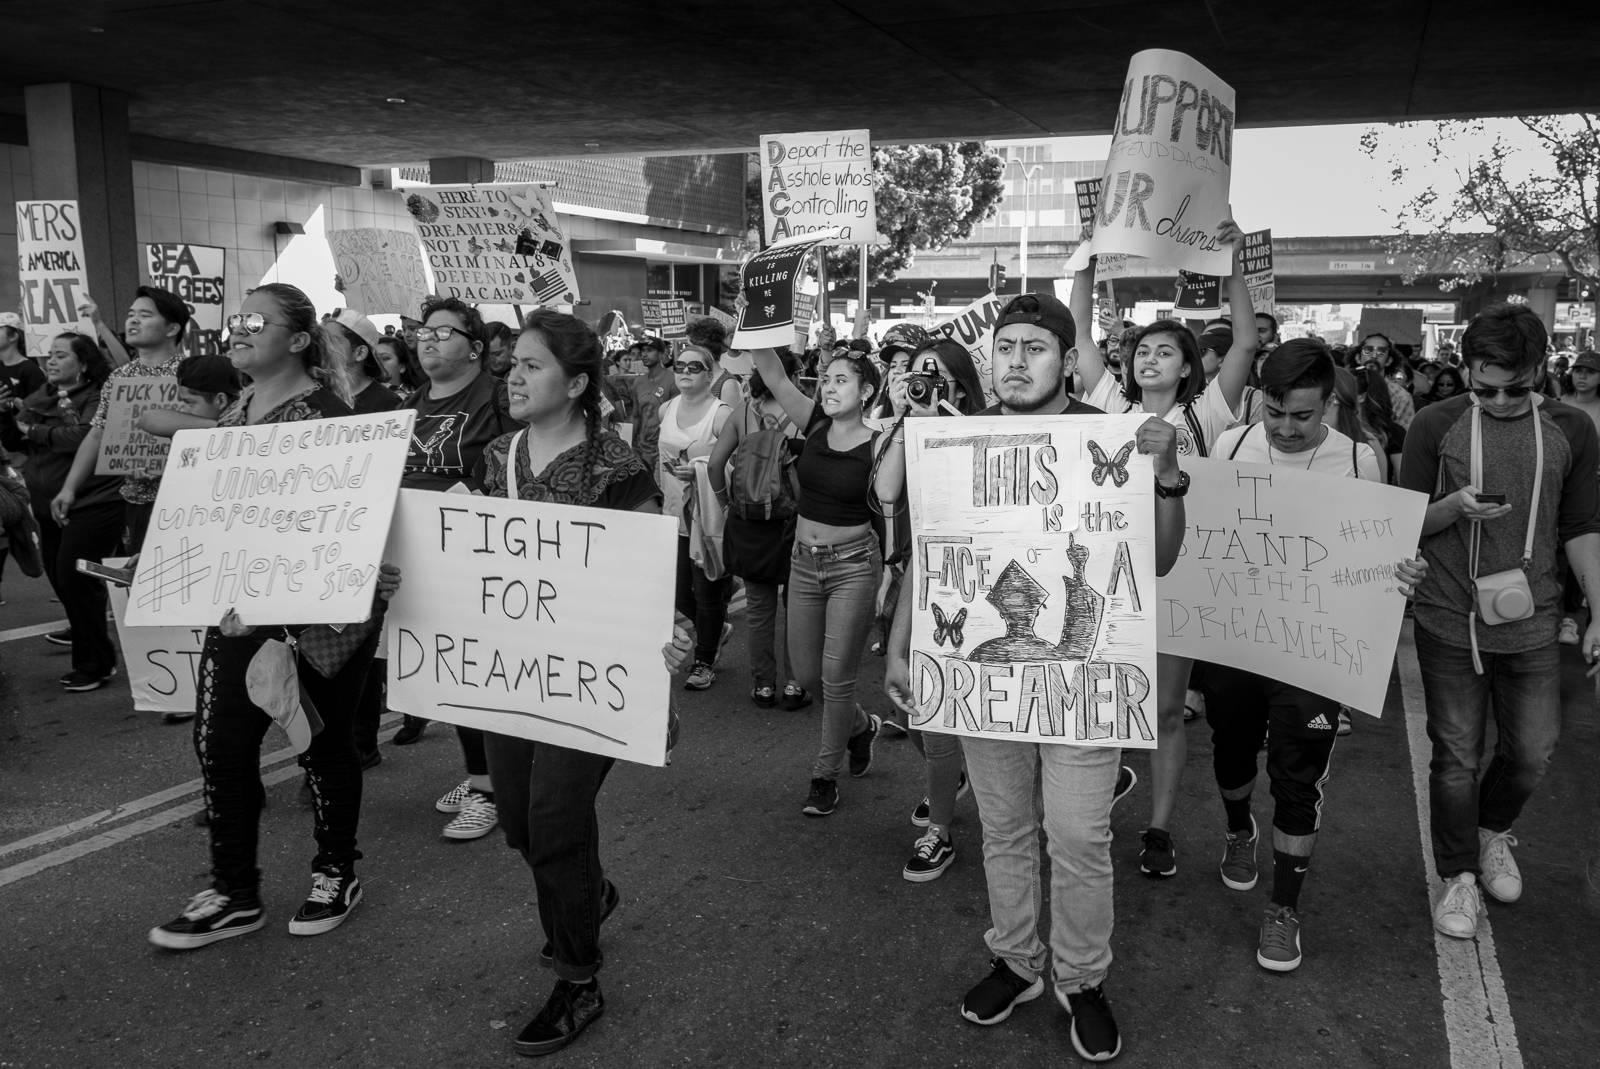 Rallying-against-dismantling-the-DACA-program-downtown-Oakland-September-9-2017-JA-Best-in-Show-by-Eric-Ahrendt-CC